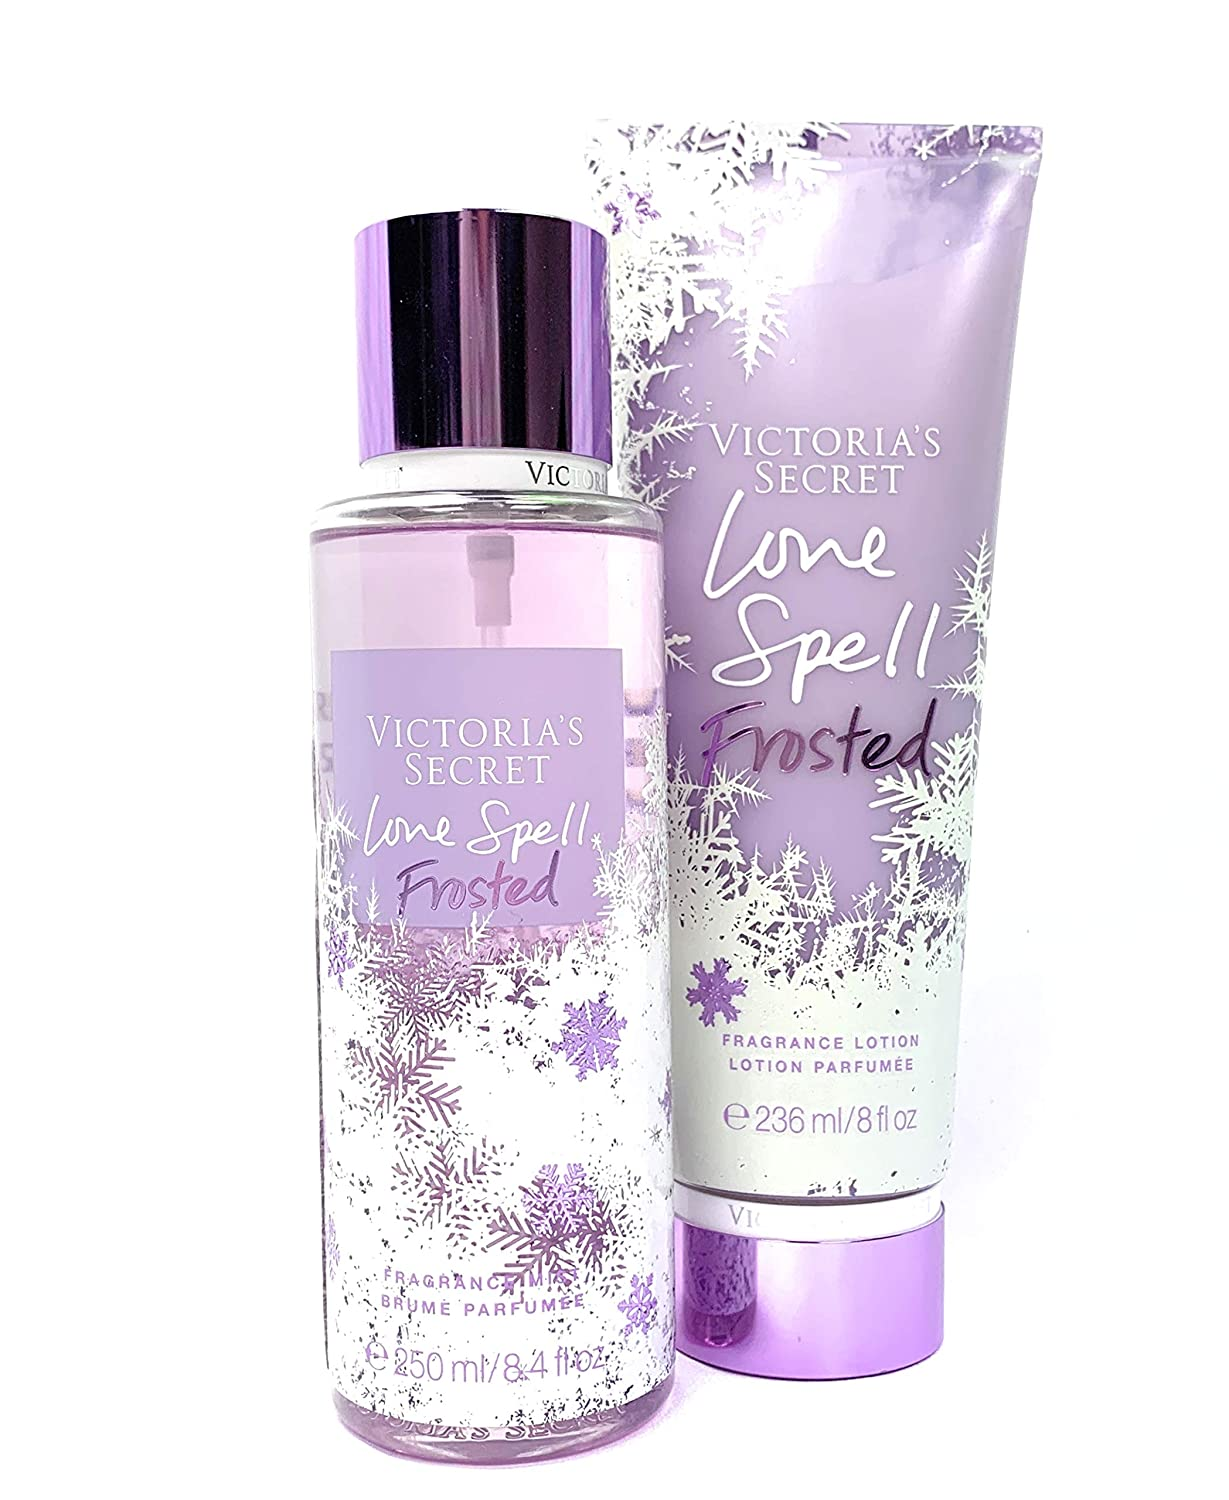 Victoria's Secret Love Spell Frosted Body Mist and Fragrance Lotion Limited Edition Set